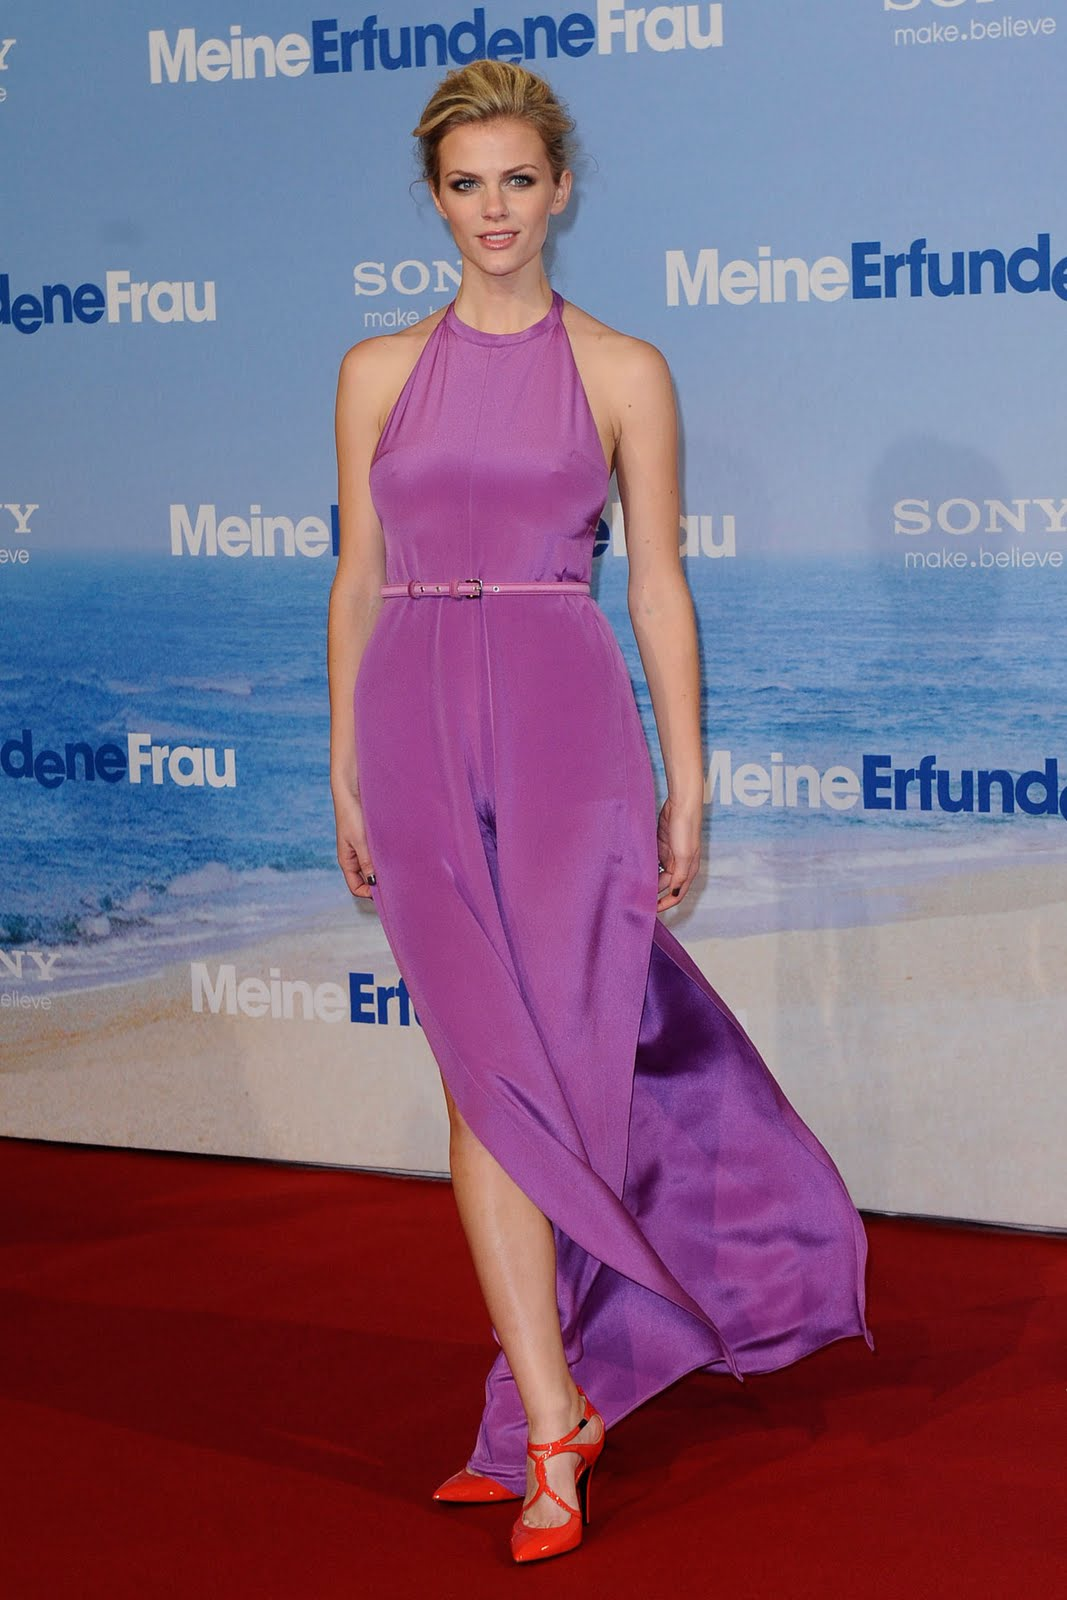 http://2.bp.blogspot.com/-PyF4hUyzP7o/TW60nxc2jfI/AAAAAAAADiU/vnY5IgKLAg4/s1600/brooklyn-decker-just-go-with-it-berlin-premiere-03.jpg